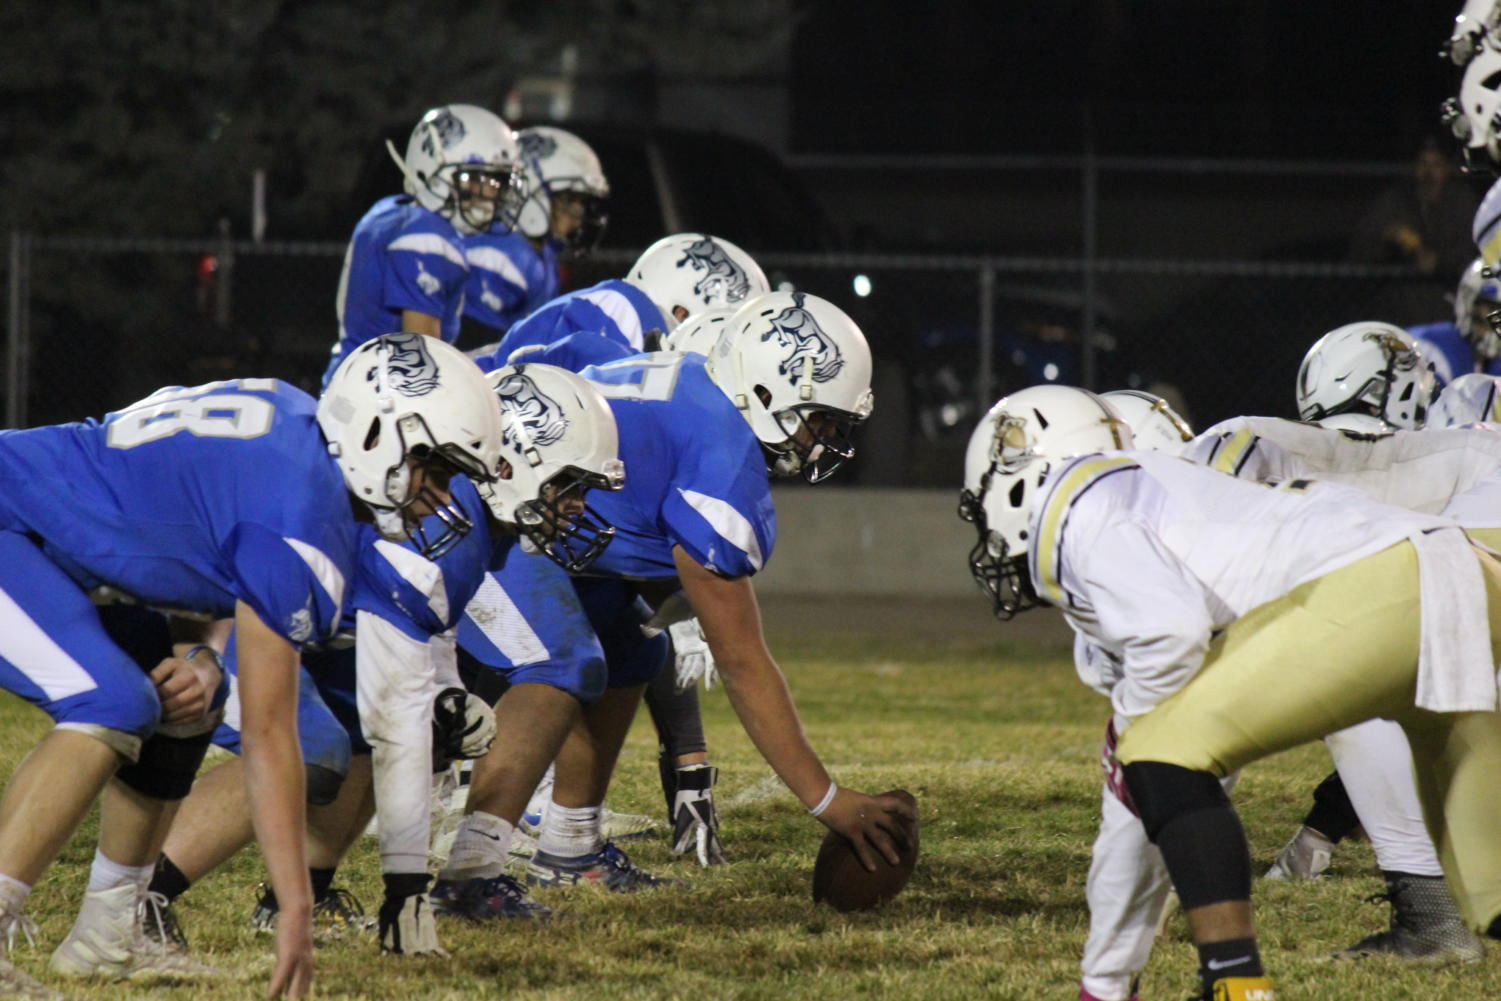 O-line getting ready for a play